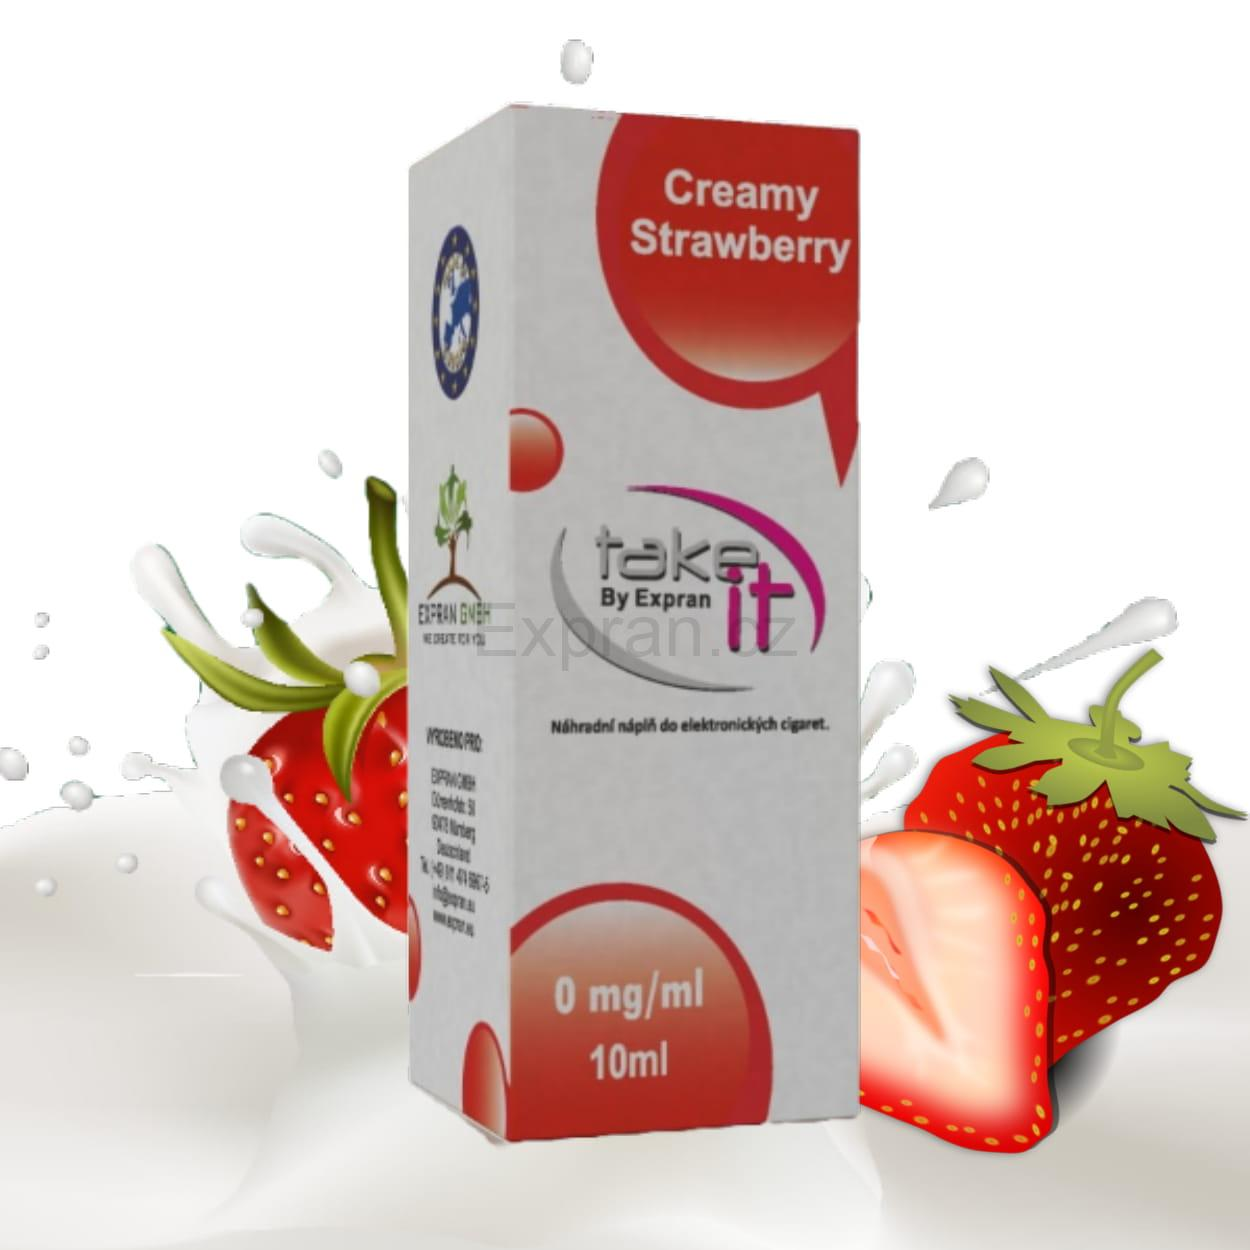 10 ml Take It - Strawberry Cream 3 mg/ml